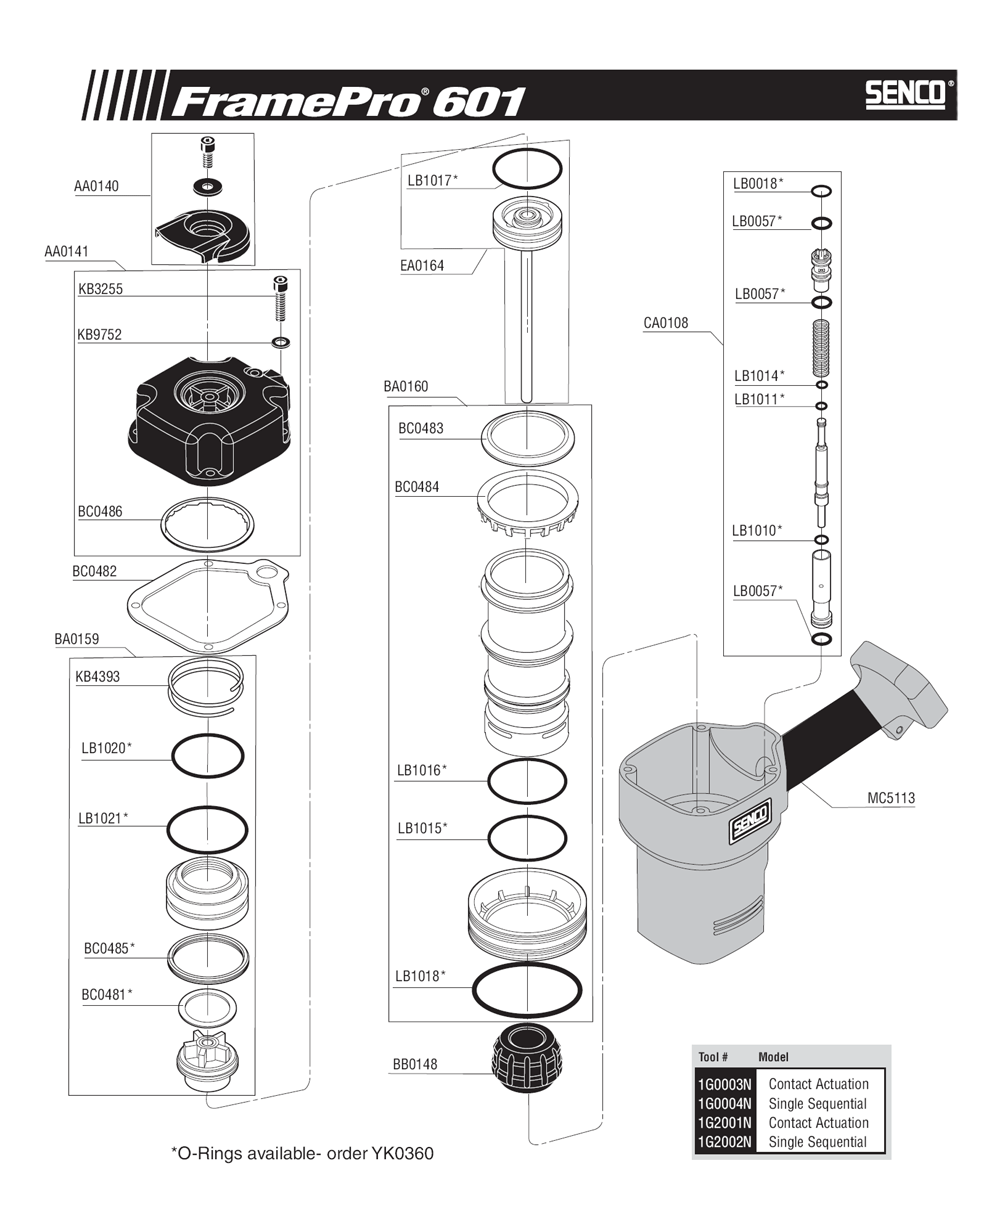 Pneumatic Counter Schematic Part : Buy senco framepro g n clipped head